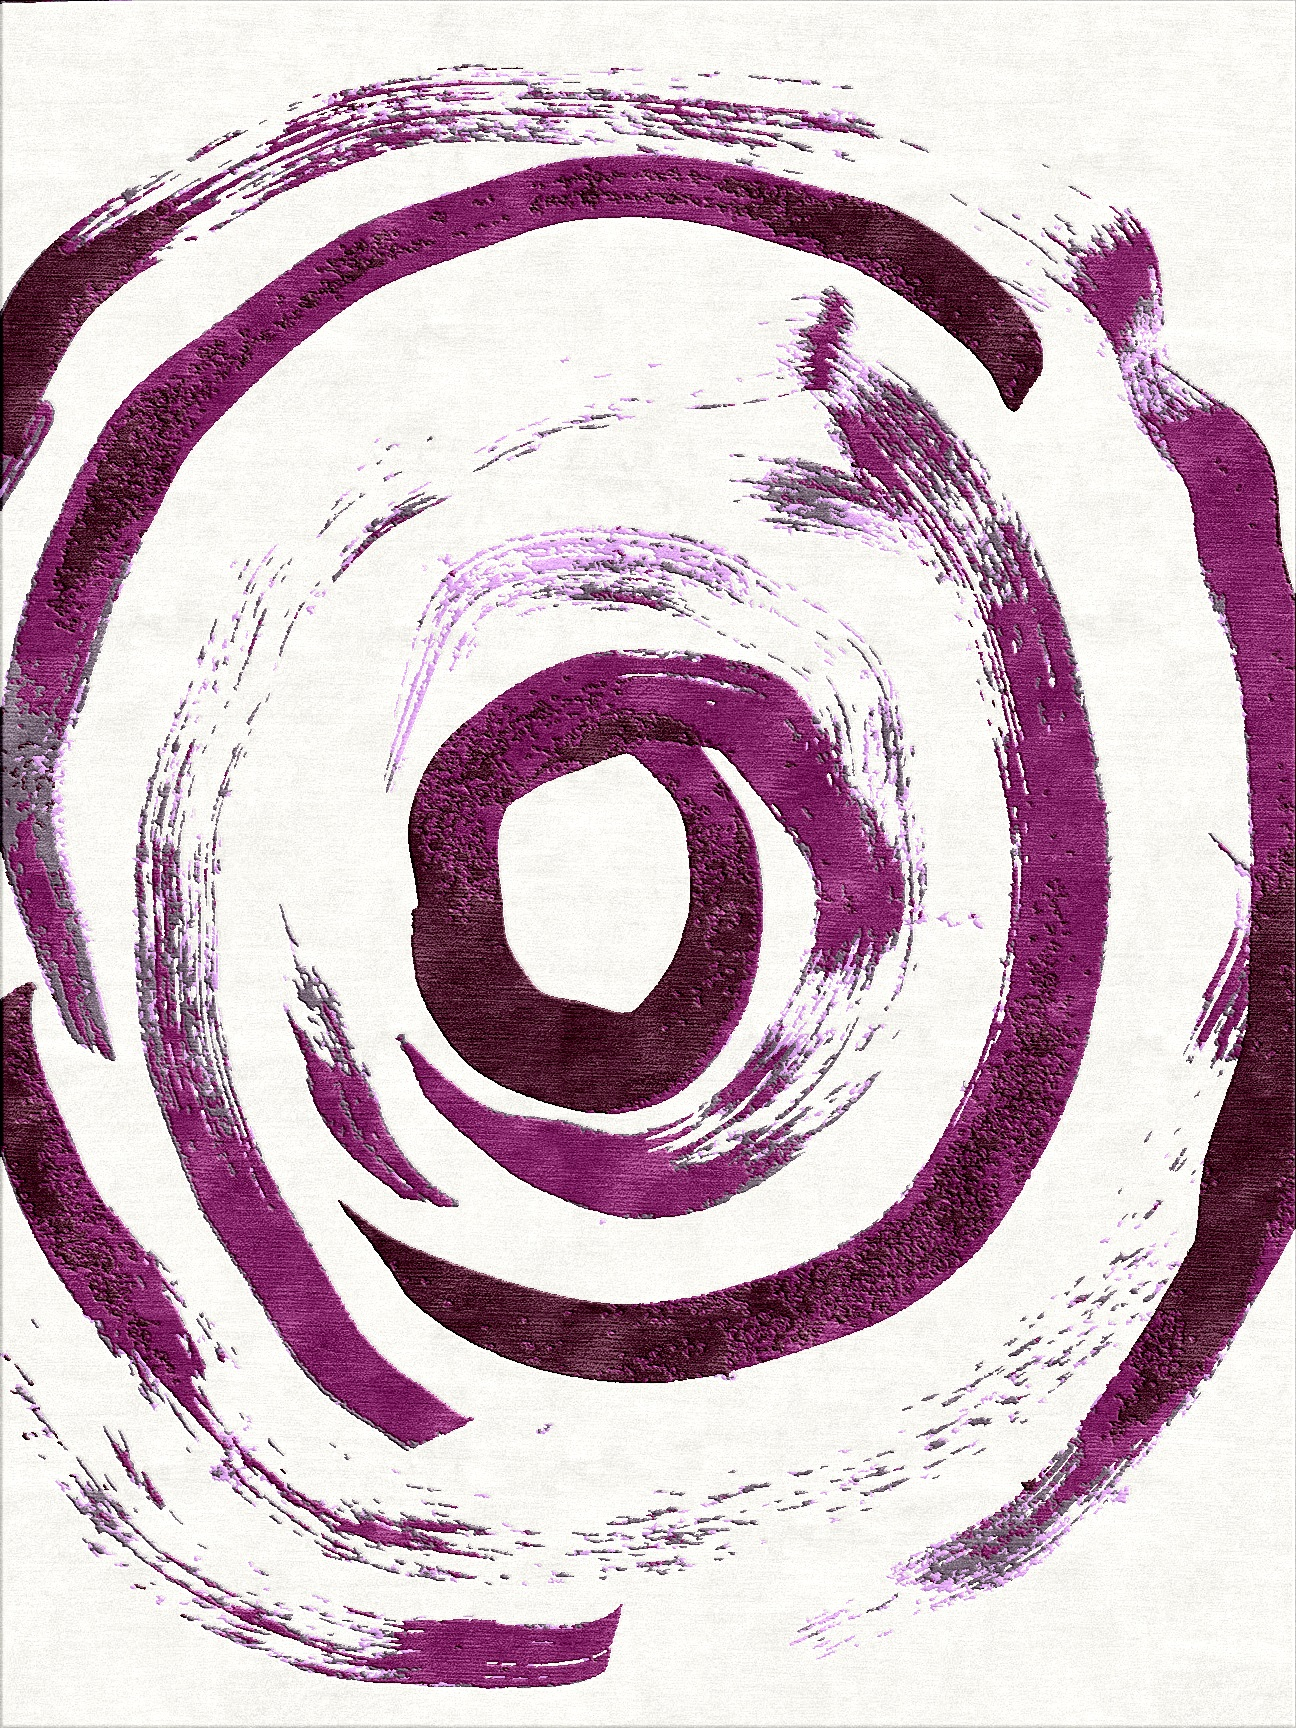 Violet Swirls(Visualization).jpg